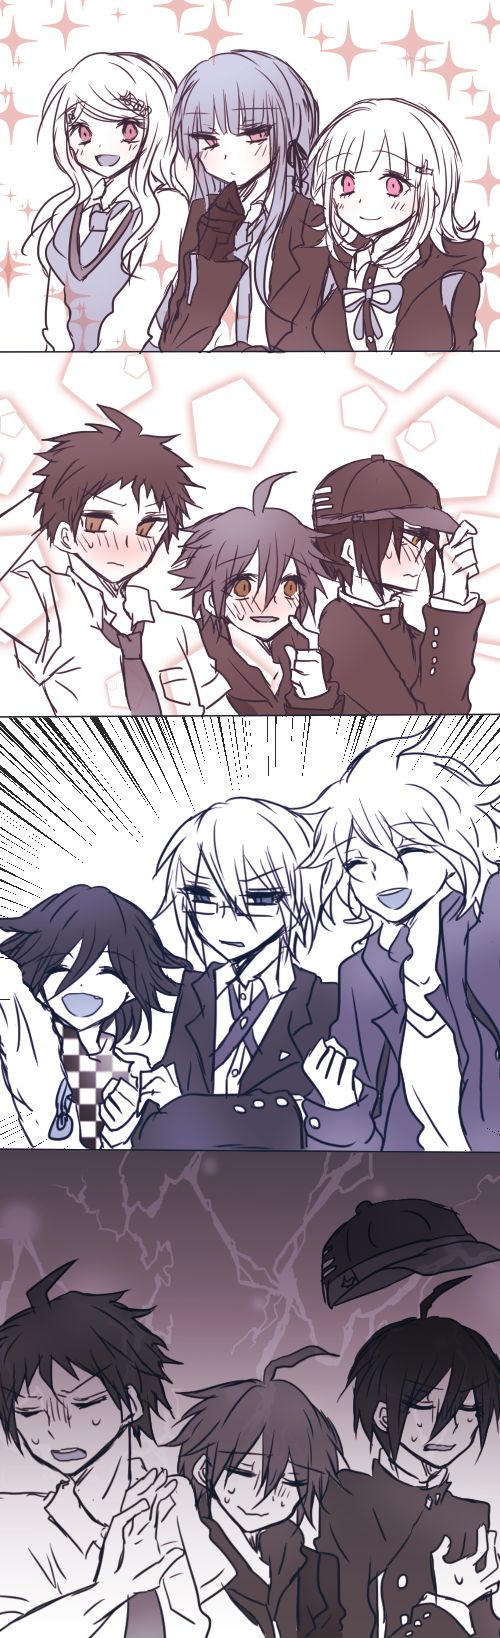 I SHIP ALL OF THEM (THE GAY SHIPS)